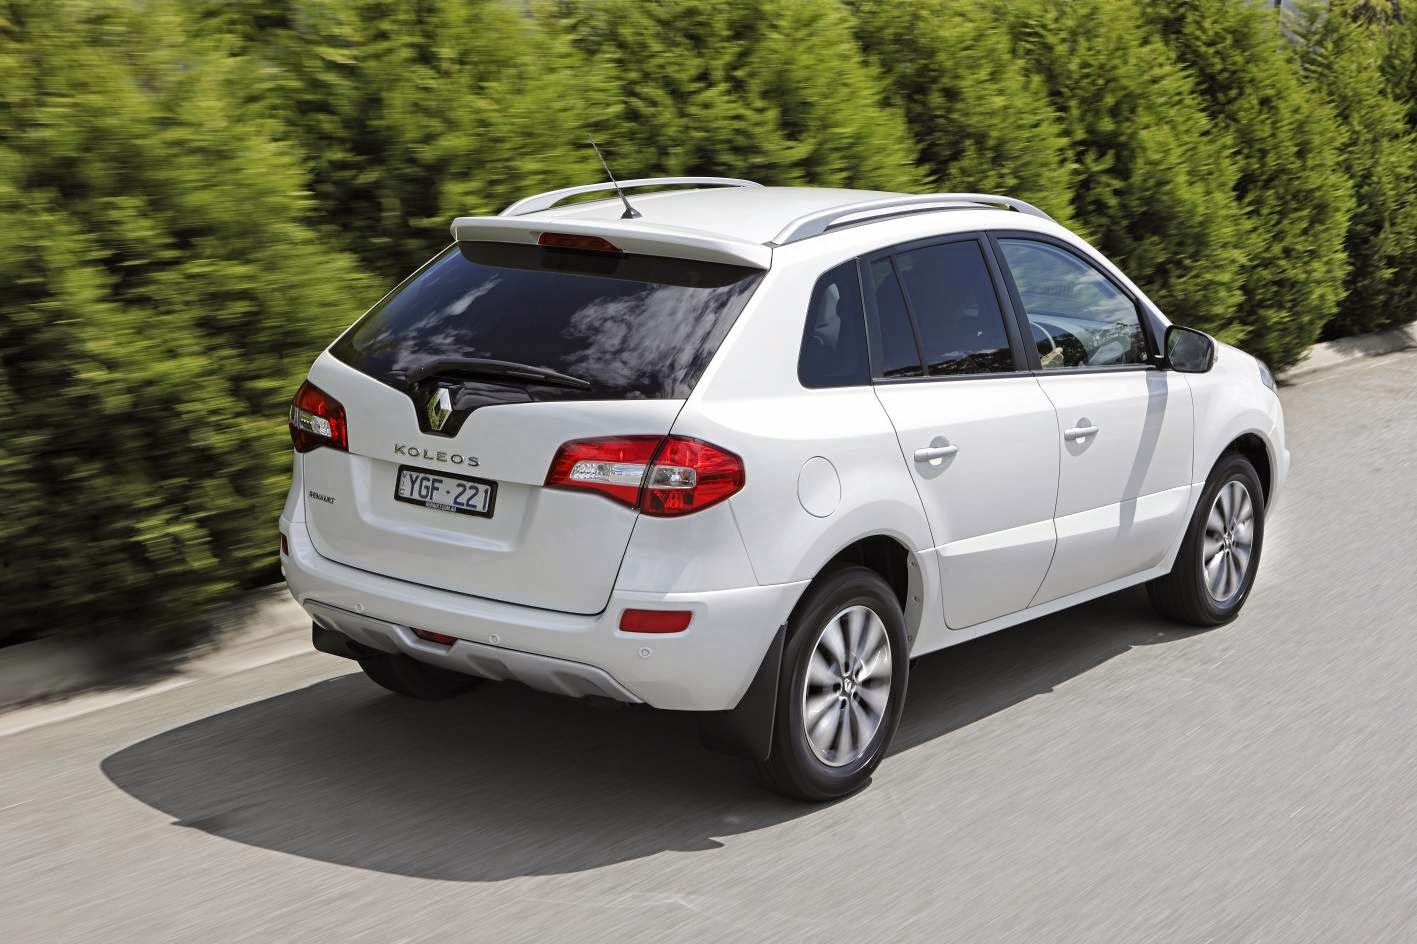 renault koleos 2 5 suv harga kereta di malaysia. Black Bedroom Furniture Sets. Home Design Ideas